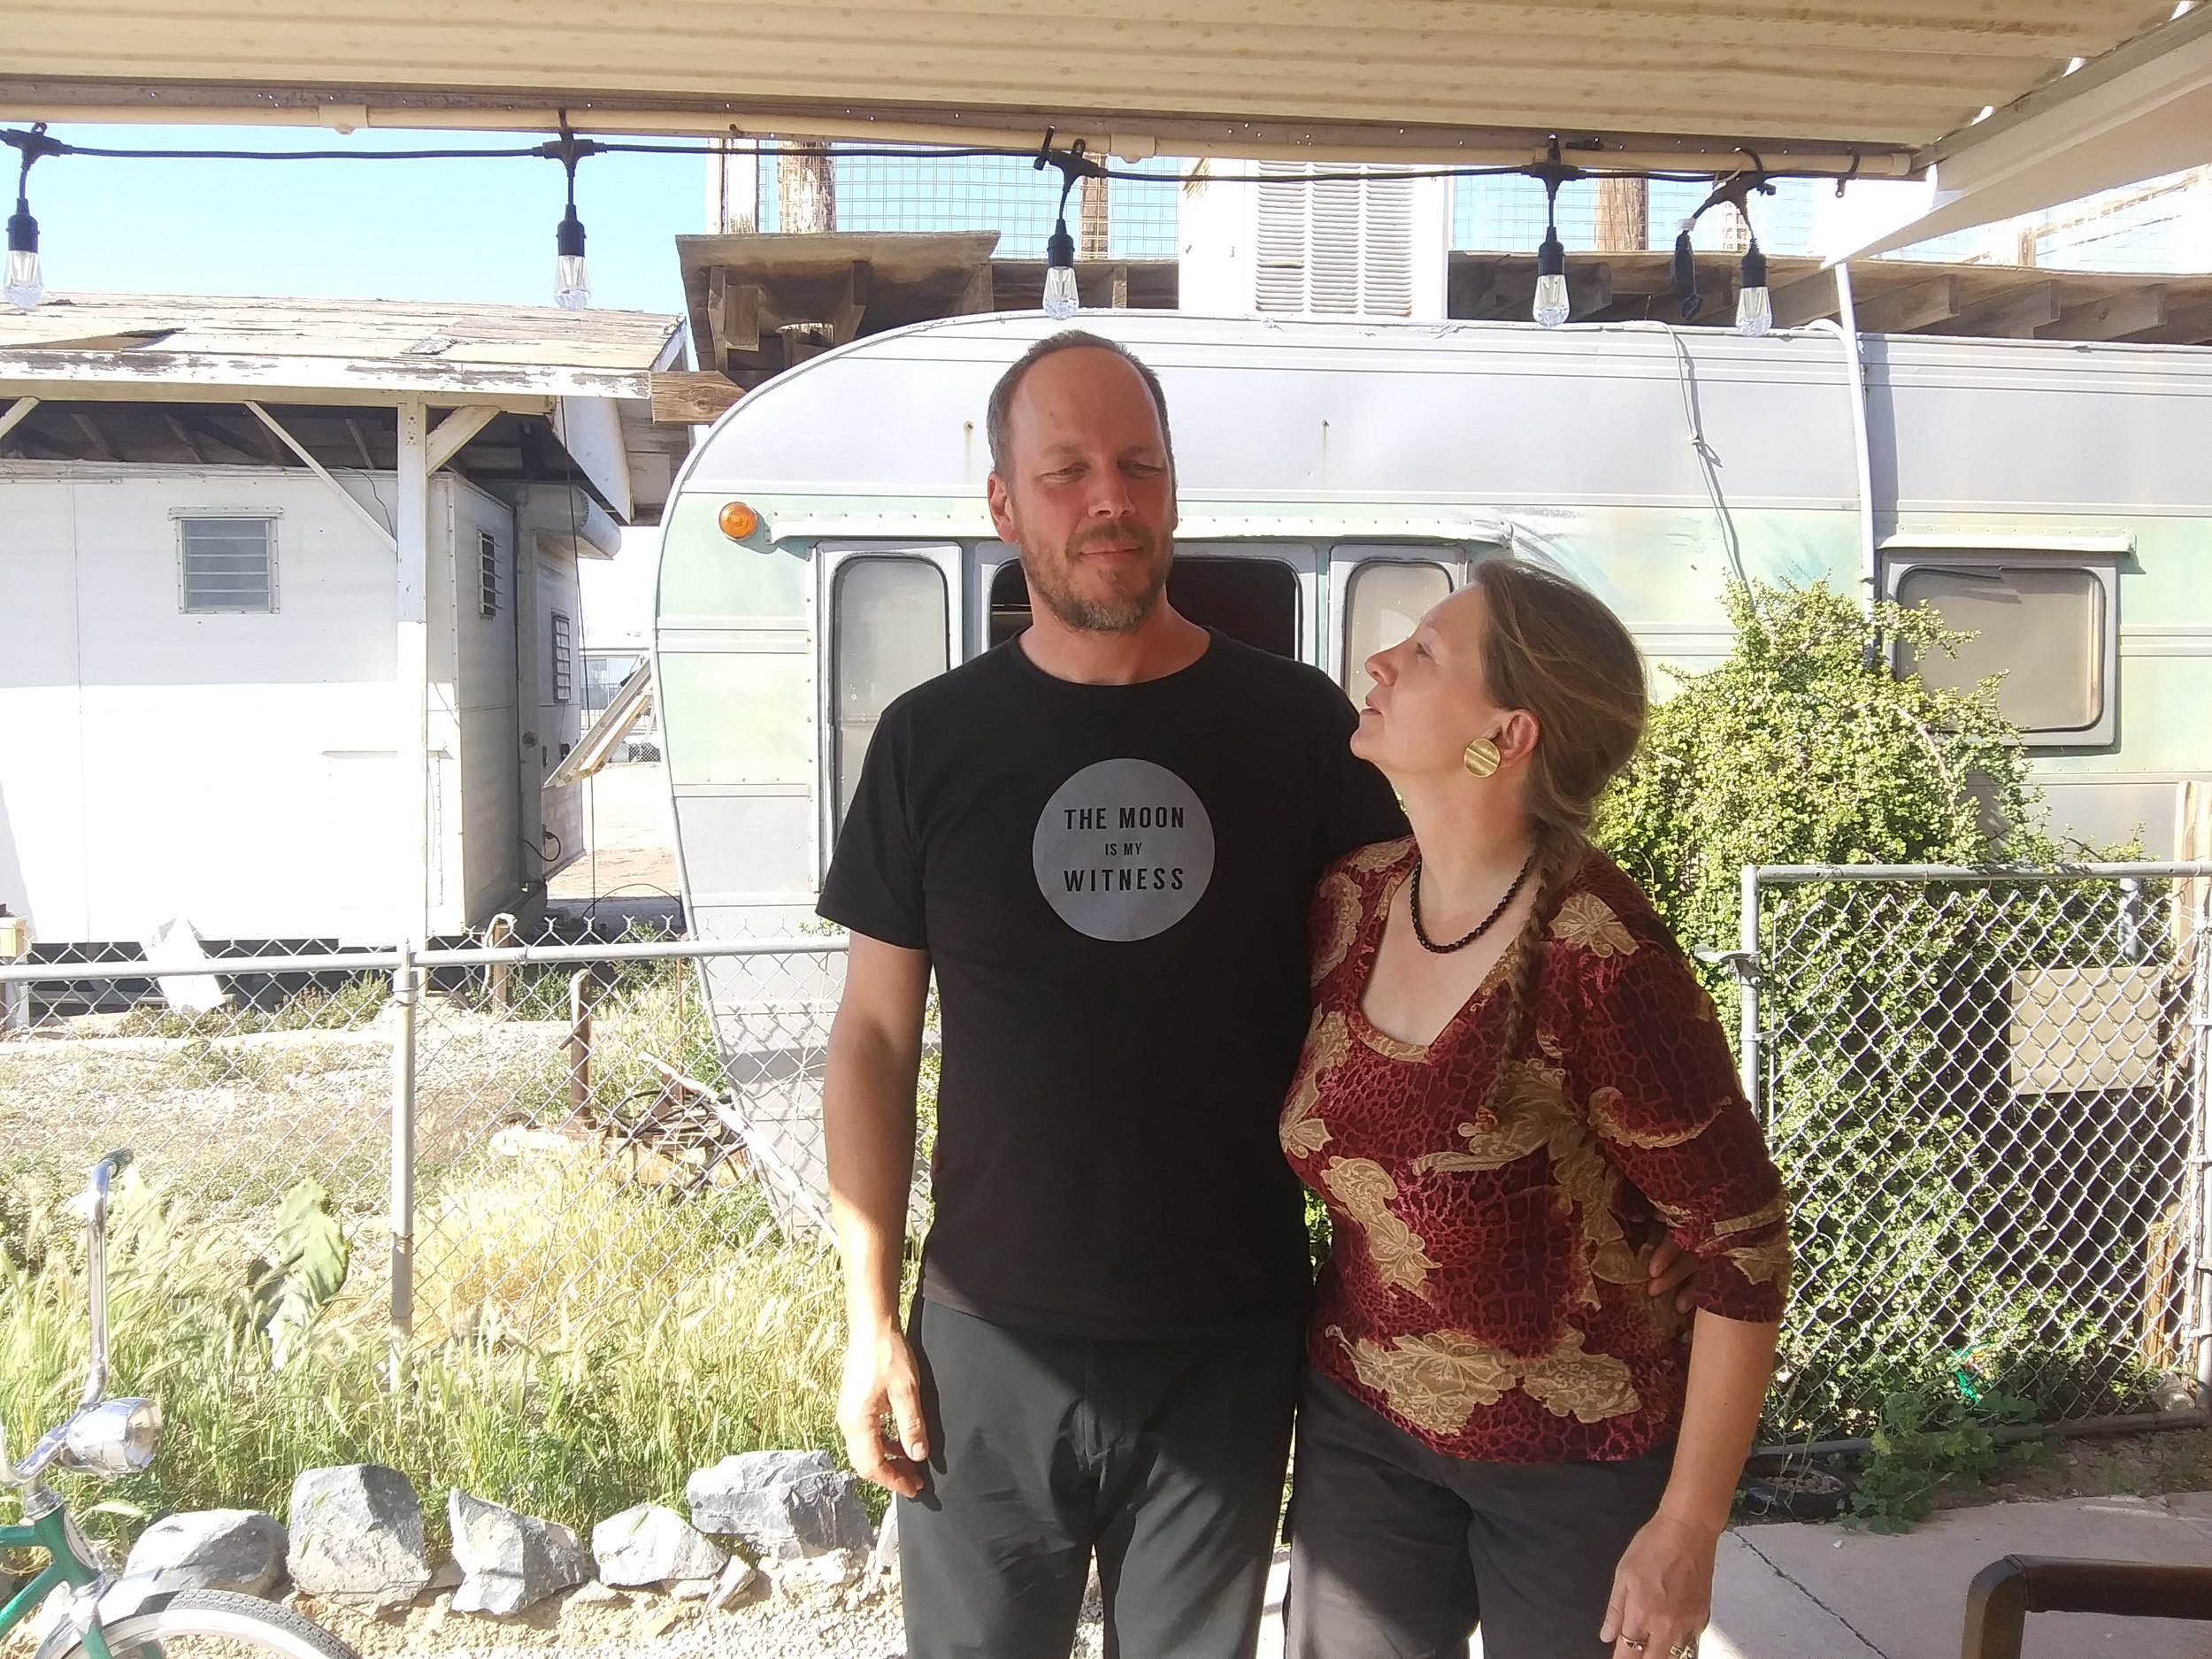 Uwe H. and Frauke , at their home in Bombay Beach, CA